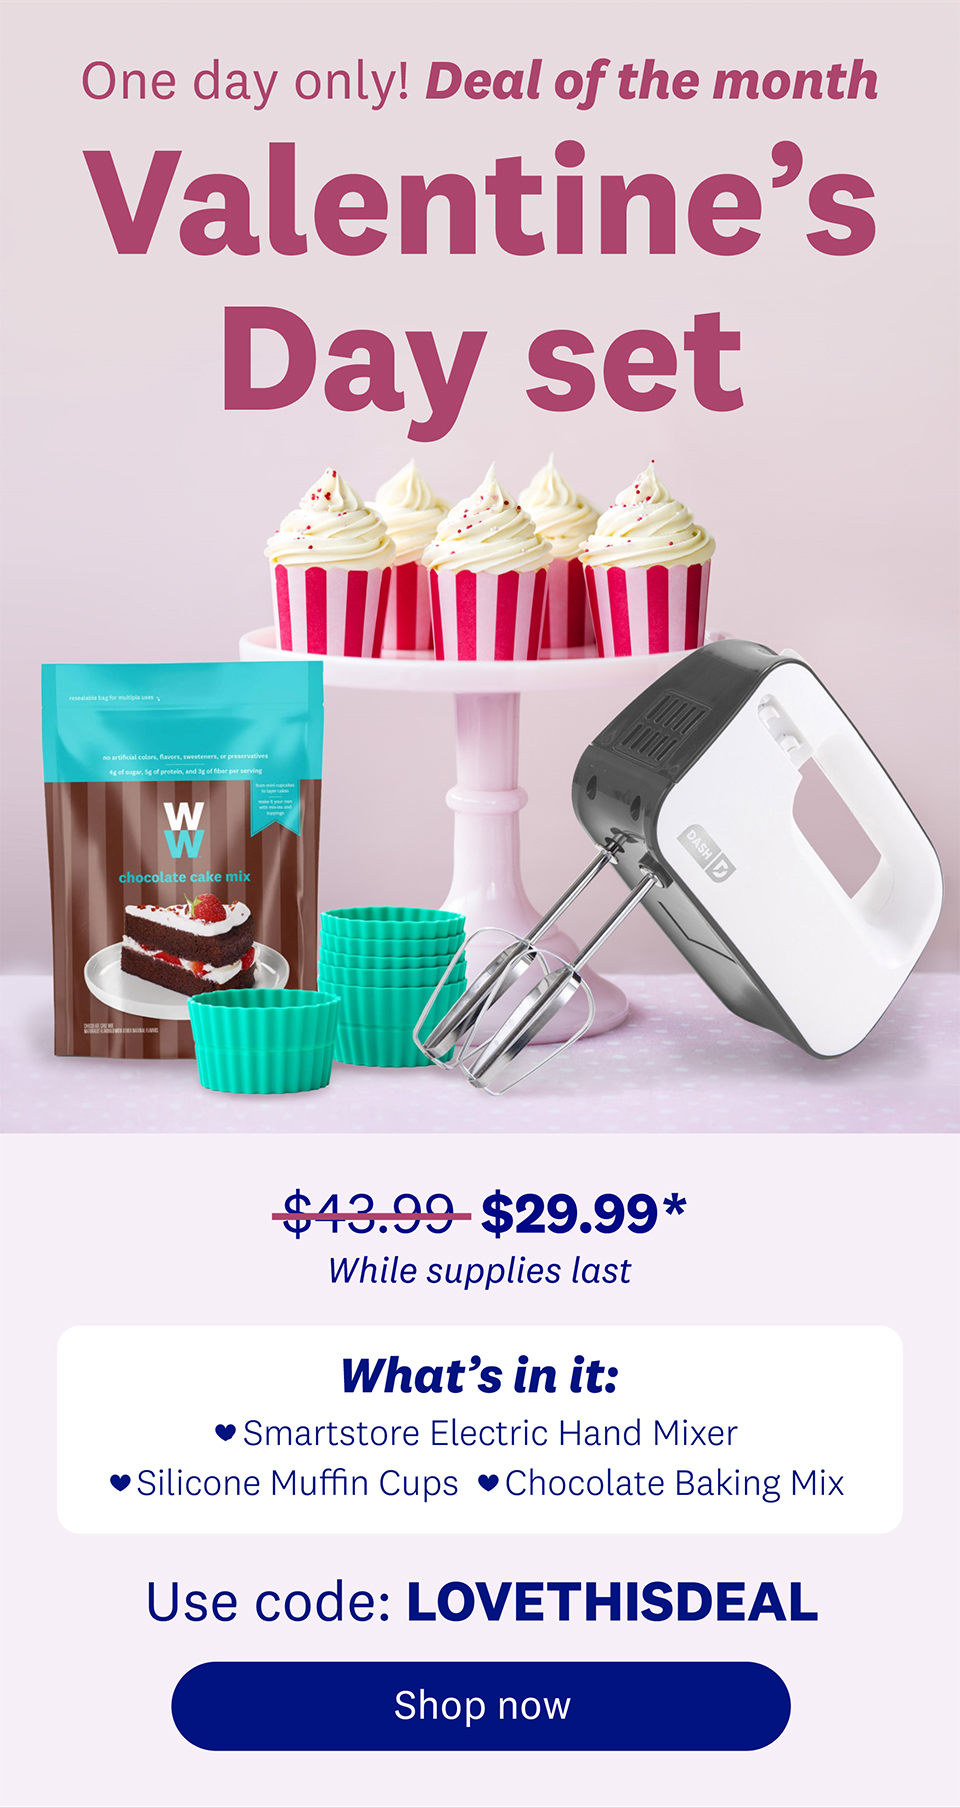 One day only! Deal of the month | Valentine's Day set | $43.99 $29.99* While supplies last | What's in it: • Smartstore Electric Hand Mixer • Silicone Muffin Cups • Chocolate Baking Mix | Use code: LOVETHISDEAL | Shop now